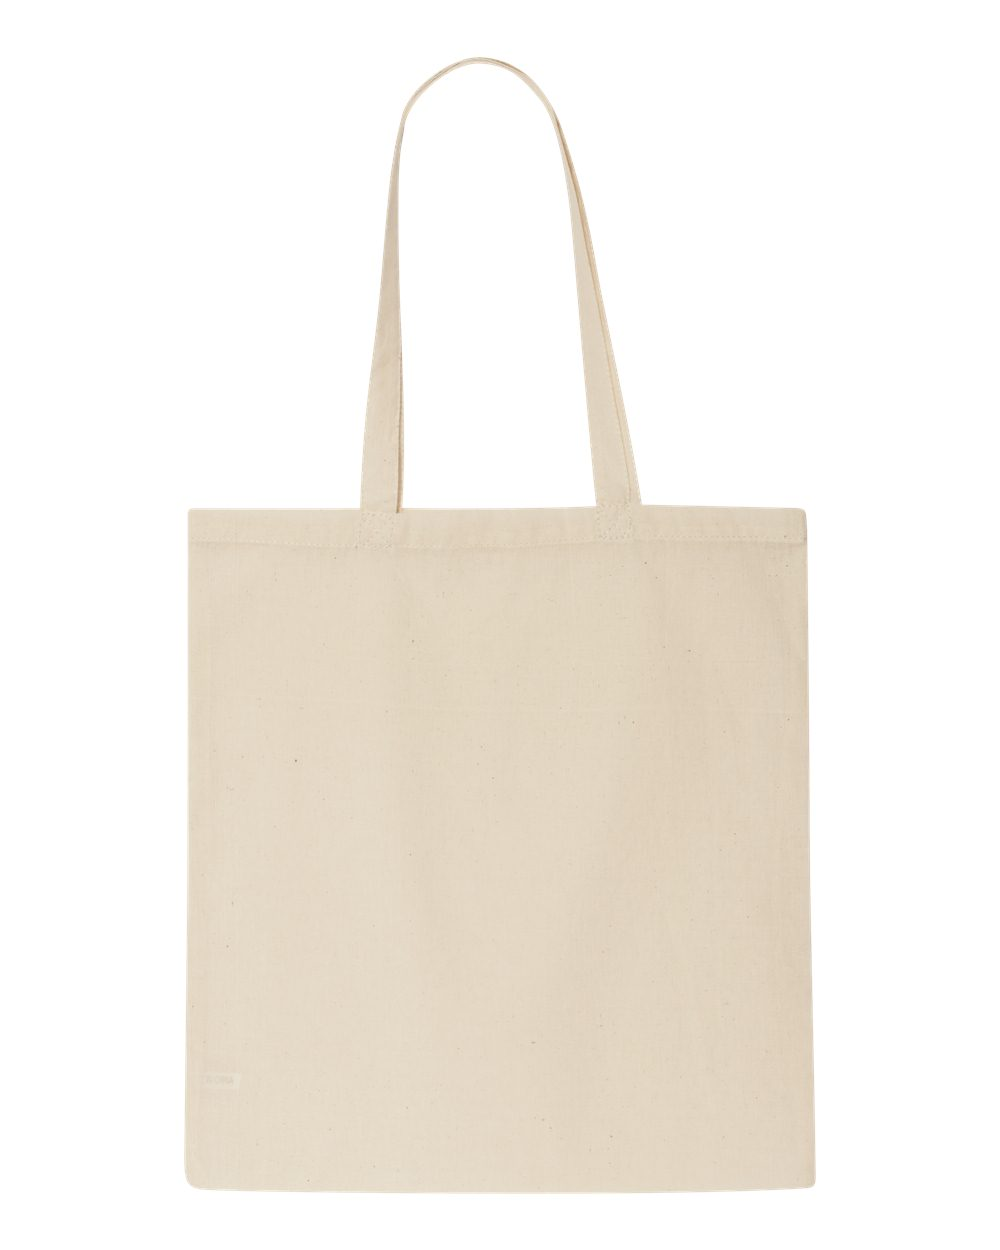 Valubag VB0102 - Classic Cotton Tote Bag $1.24 - Bags